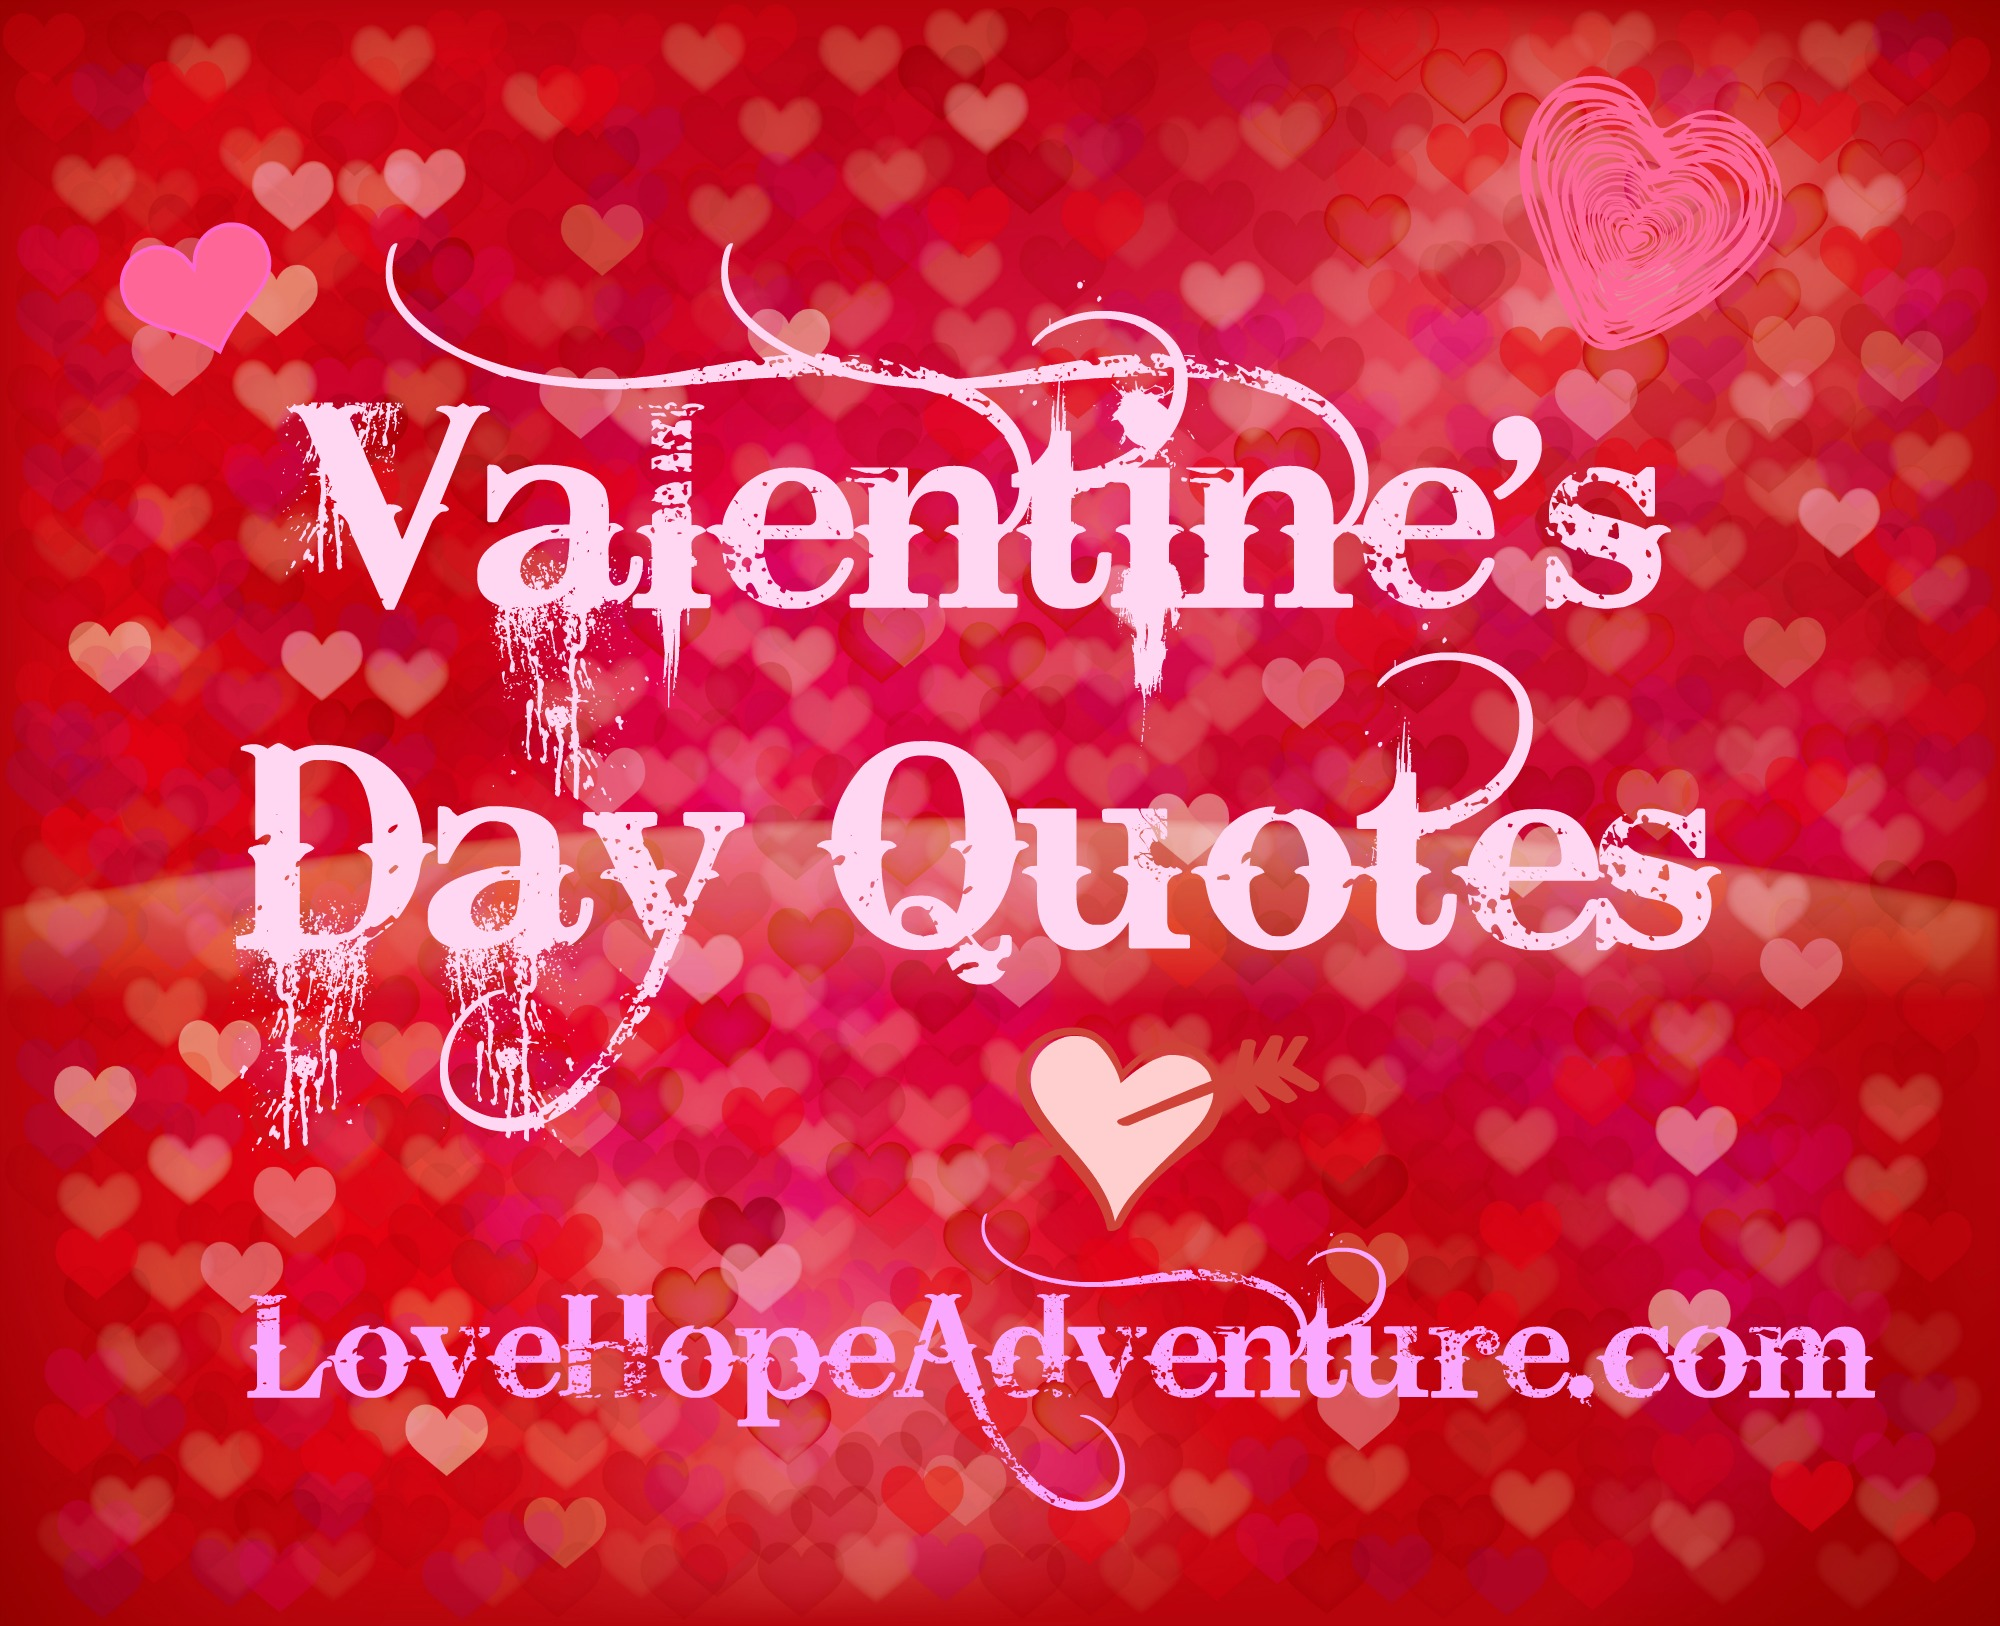 valentine 39 s day quotes love hope adventure marriage